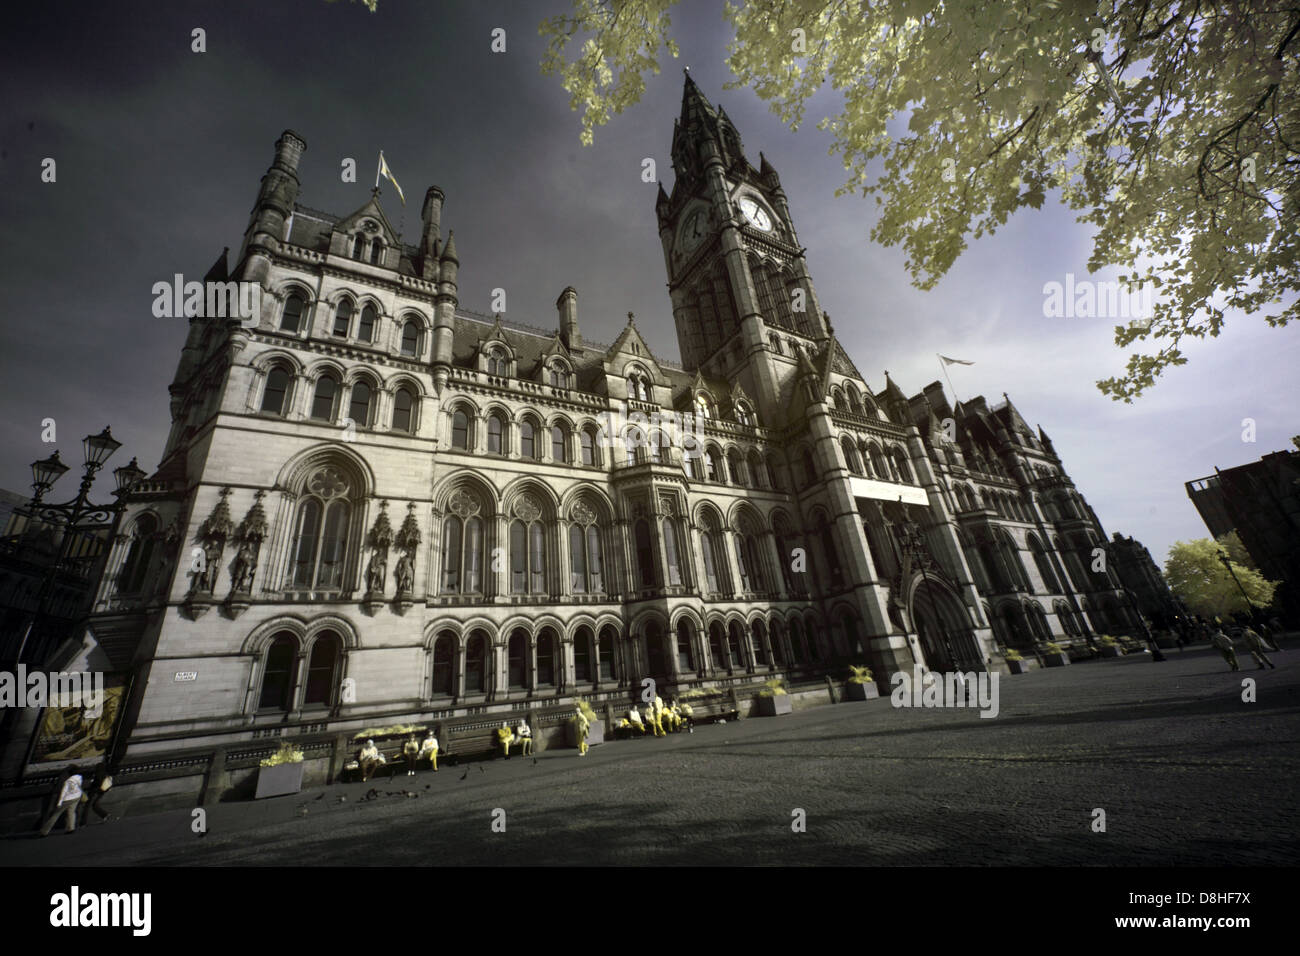 Manchester,gothic,town,hall,Albert,Square,Manchester,England,taken,with,an,IR,adapted,Canon,5D,DSLR,camera,infra-red,infra,red,720nm,720,nm,victorian,building,buildings,bright,foliage,wide,angle,M2,5DB,M25DB,revival,architecture,Alfred,Waterhouse,Neo-gothic,municipal,building,neogothic,gotonysmith,Manchester,city,council,corporation,HQ,headquarters,local,government,region,regional,gotonysmith,Mancester,Buy Pictures of,Buy Images Of